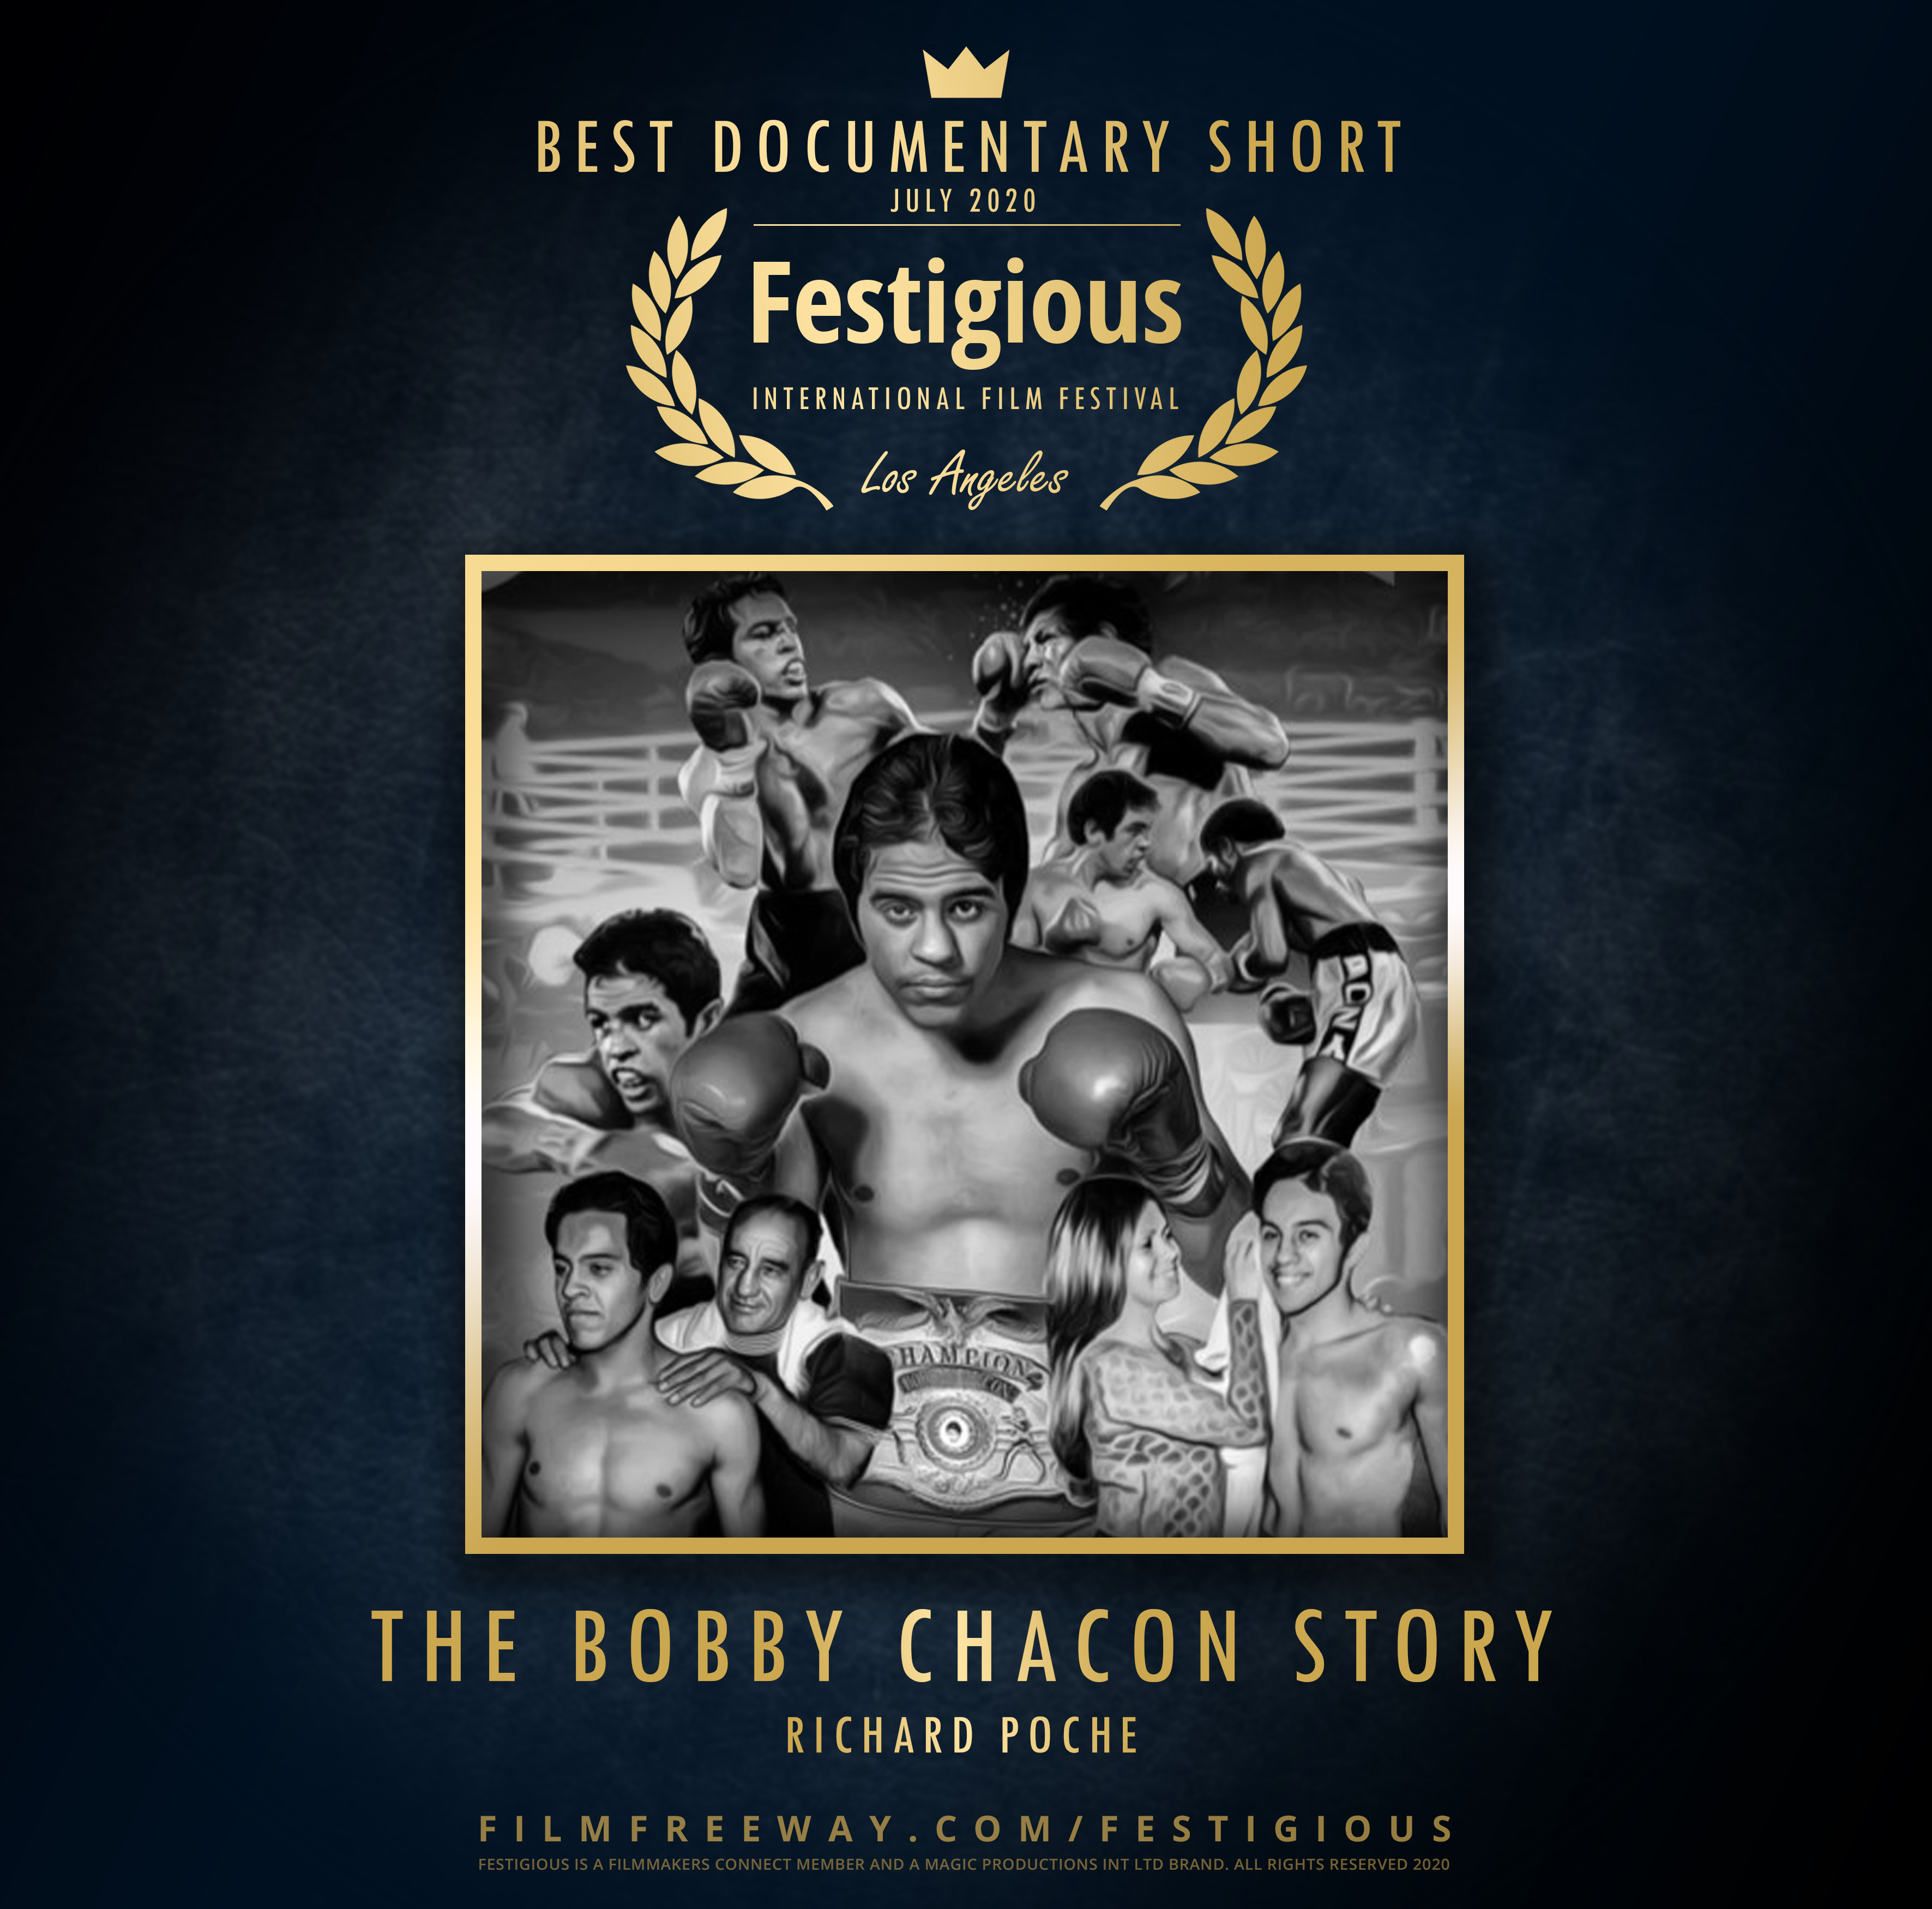 The Bobby Chacon Story design